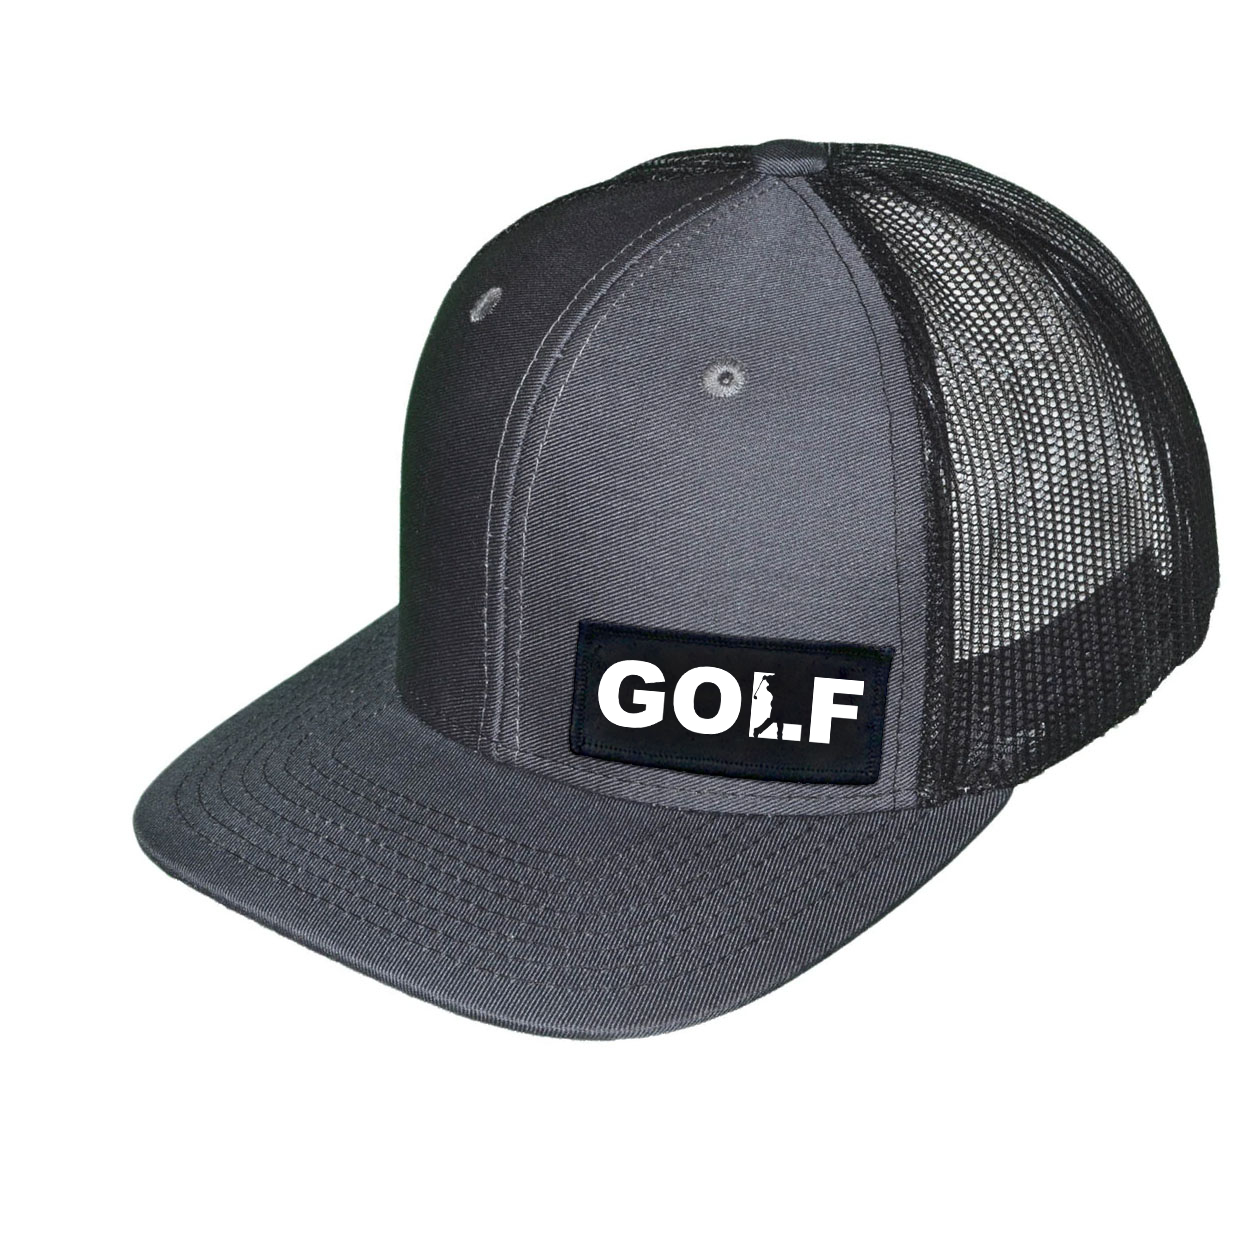 Golf Swing Logo Night Out Woven Patch Snapback Trucker Hat Dark Gray/Black (White Logo)